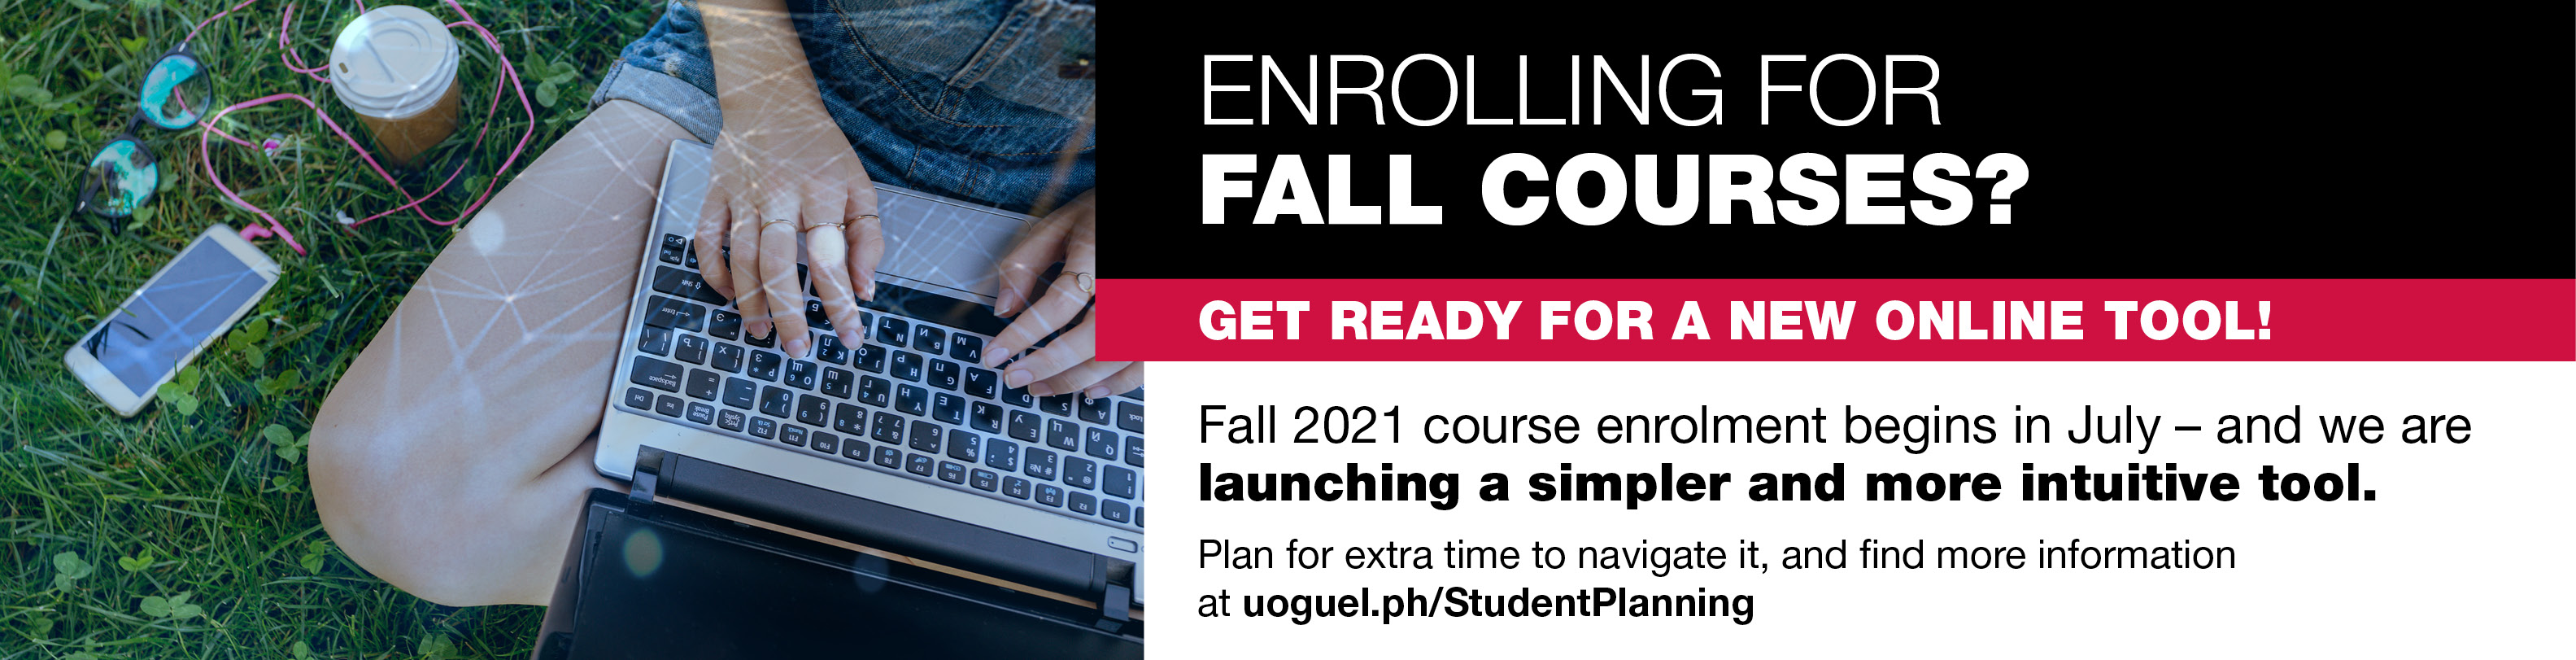 Enrolling for Fall courses? Get ready for an new online tool! Fall 2021 course enrolment begins in July- and we are launching a simpler and more intuitive tool. Plan for extra time to navigate it, and find more information at uoguel.ph/studentplanning